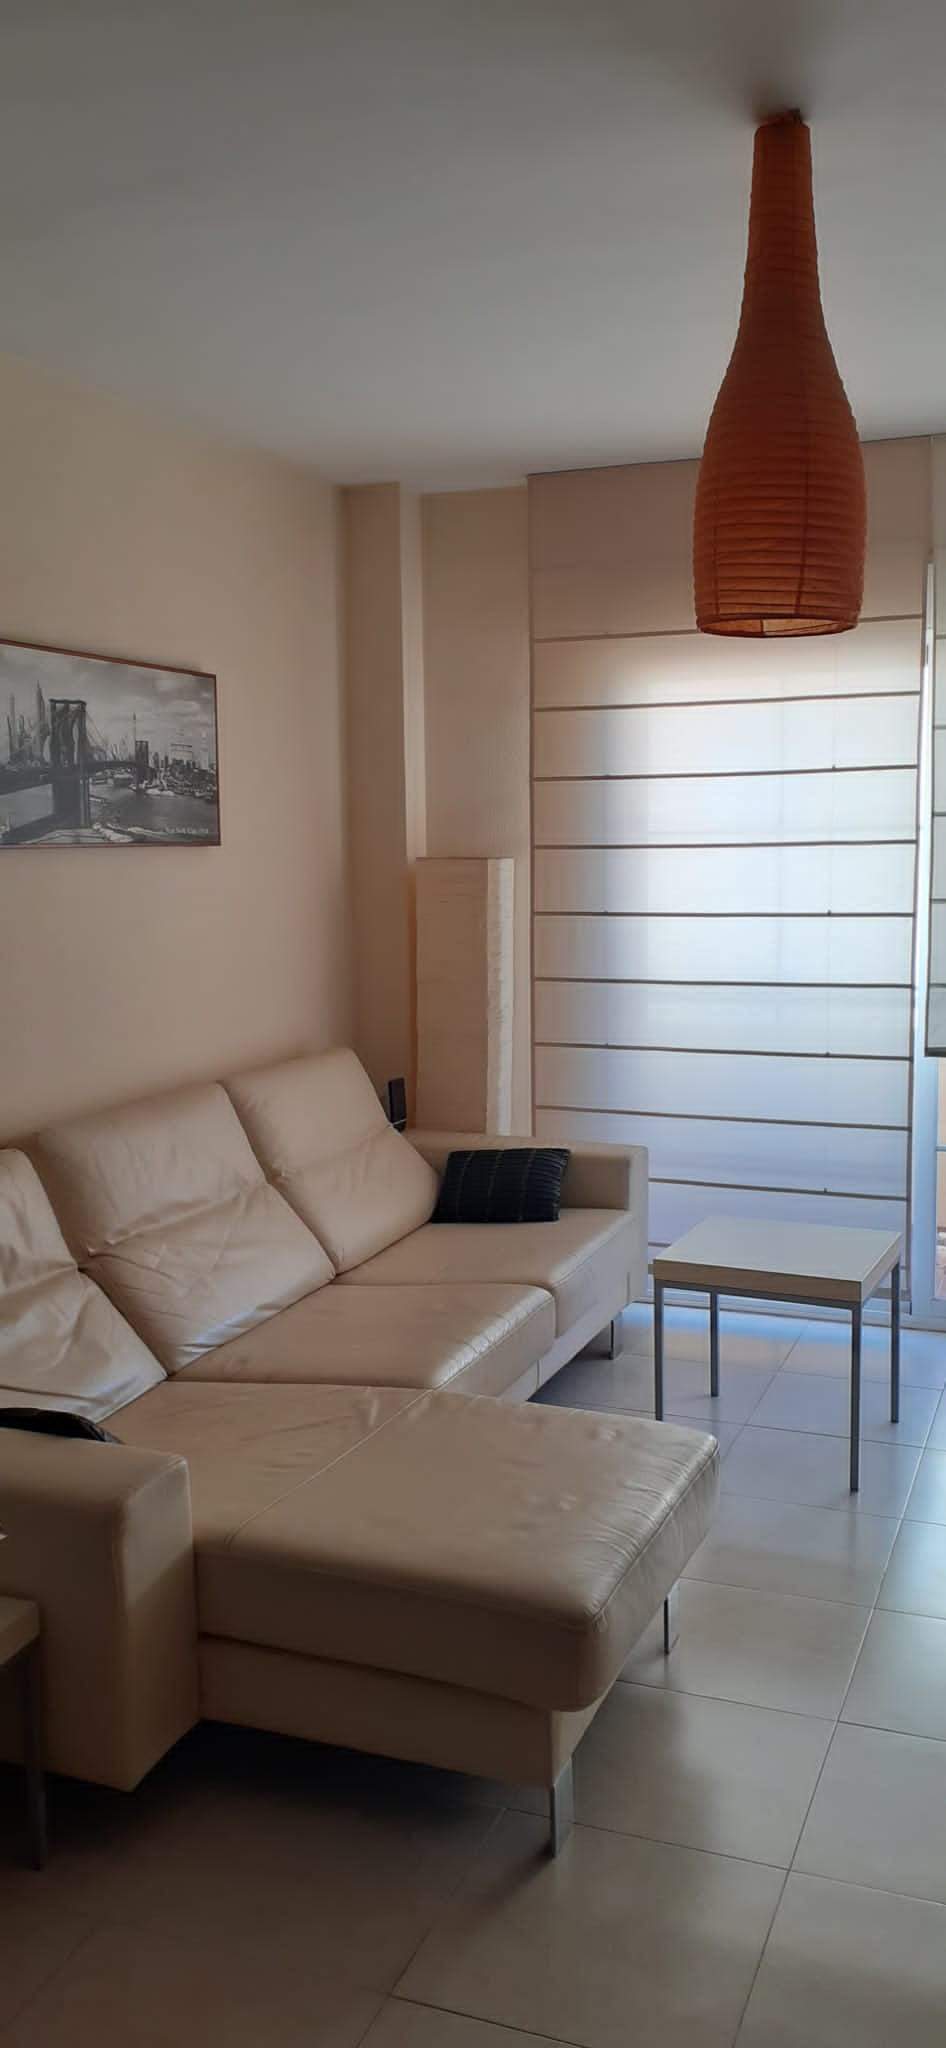 Middle floor apartment in Care Area - Dona Ermita. 3 bedrooms, 2 bathrooms, utility room with patio,, Spain